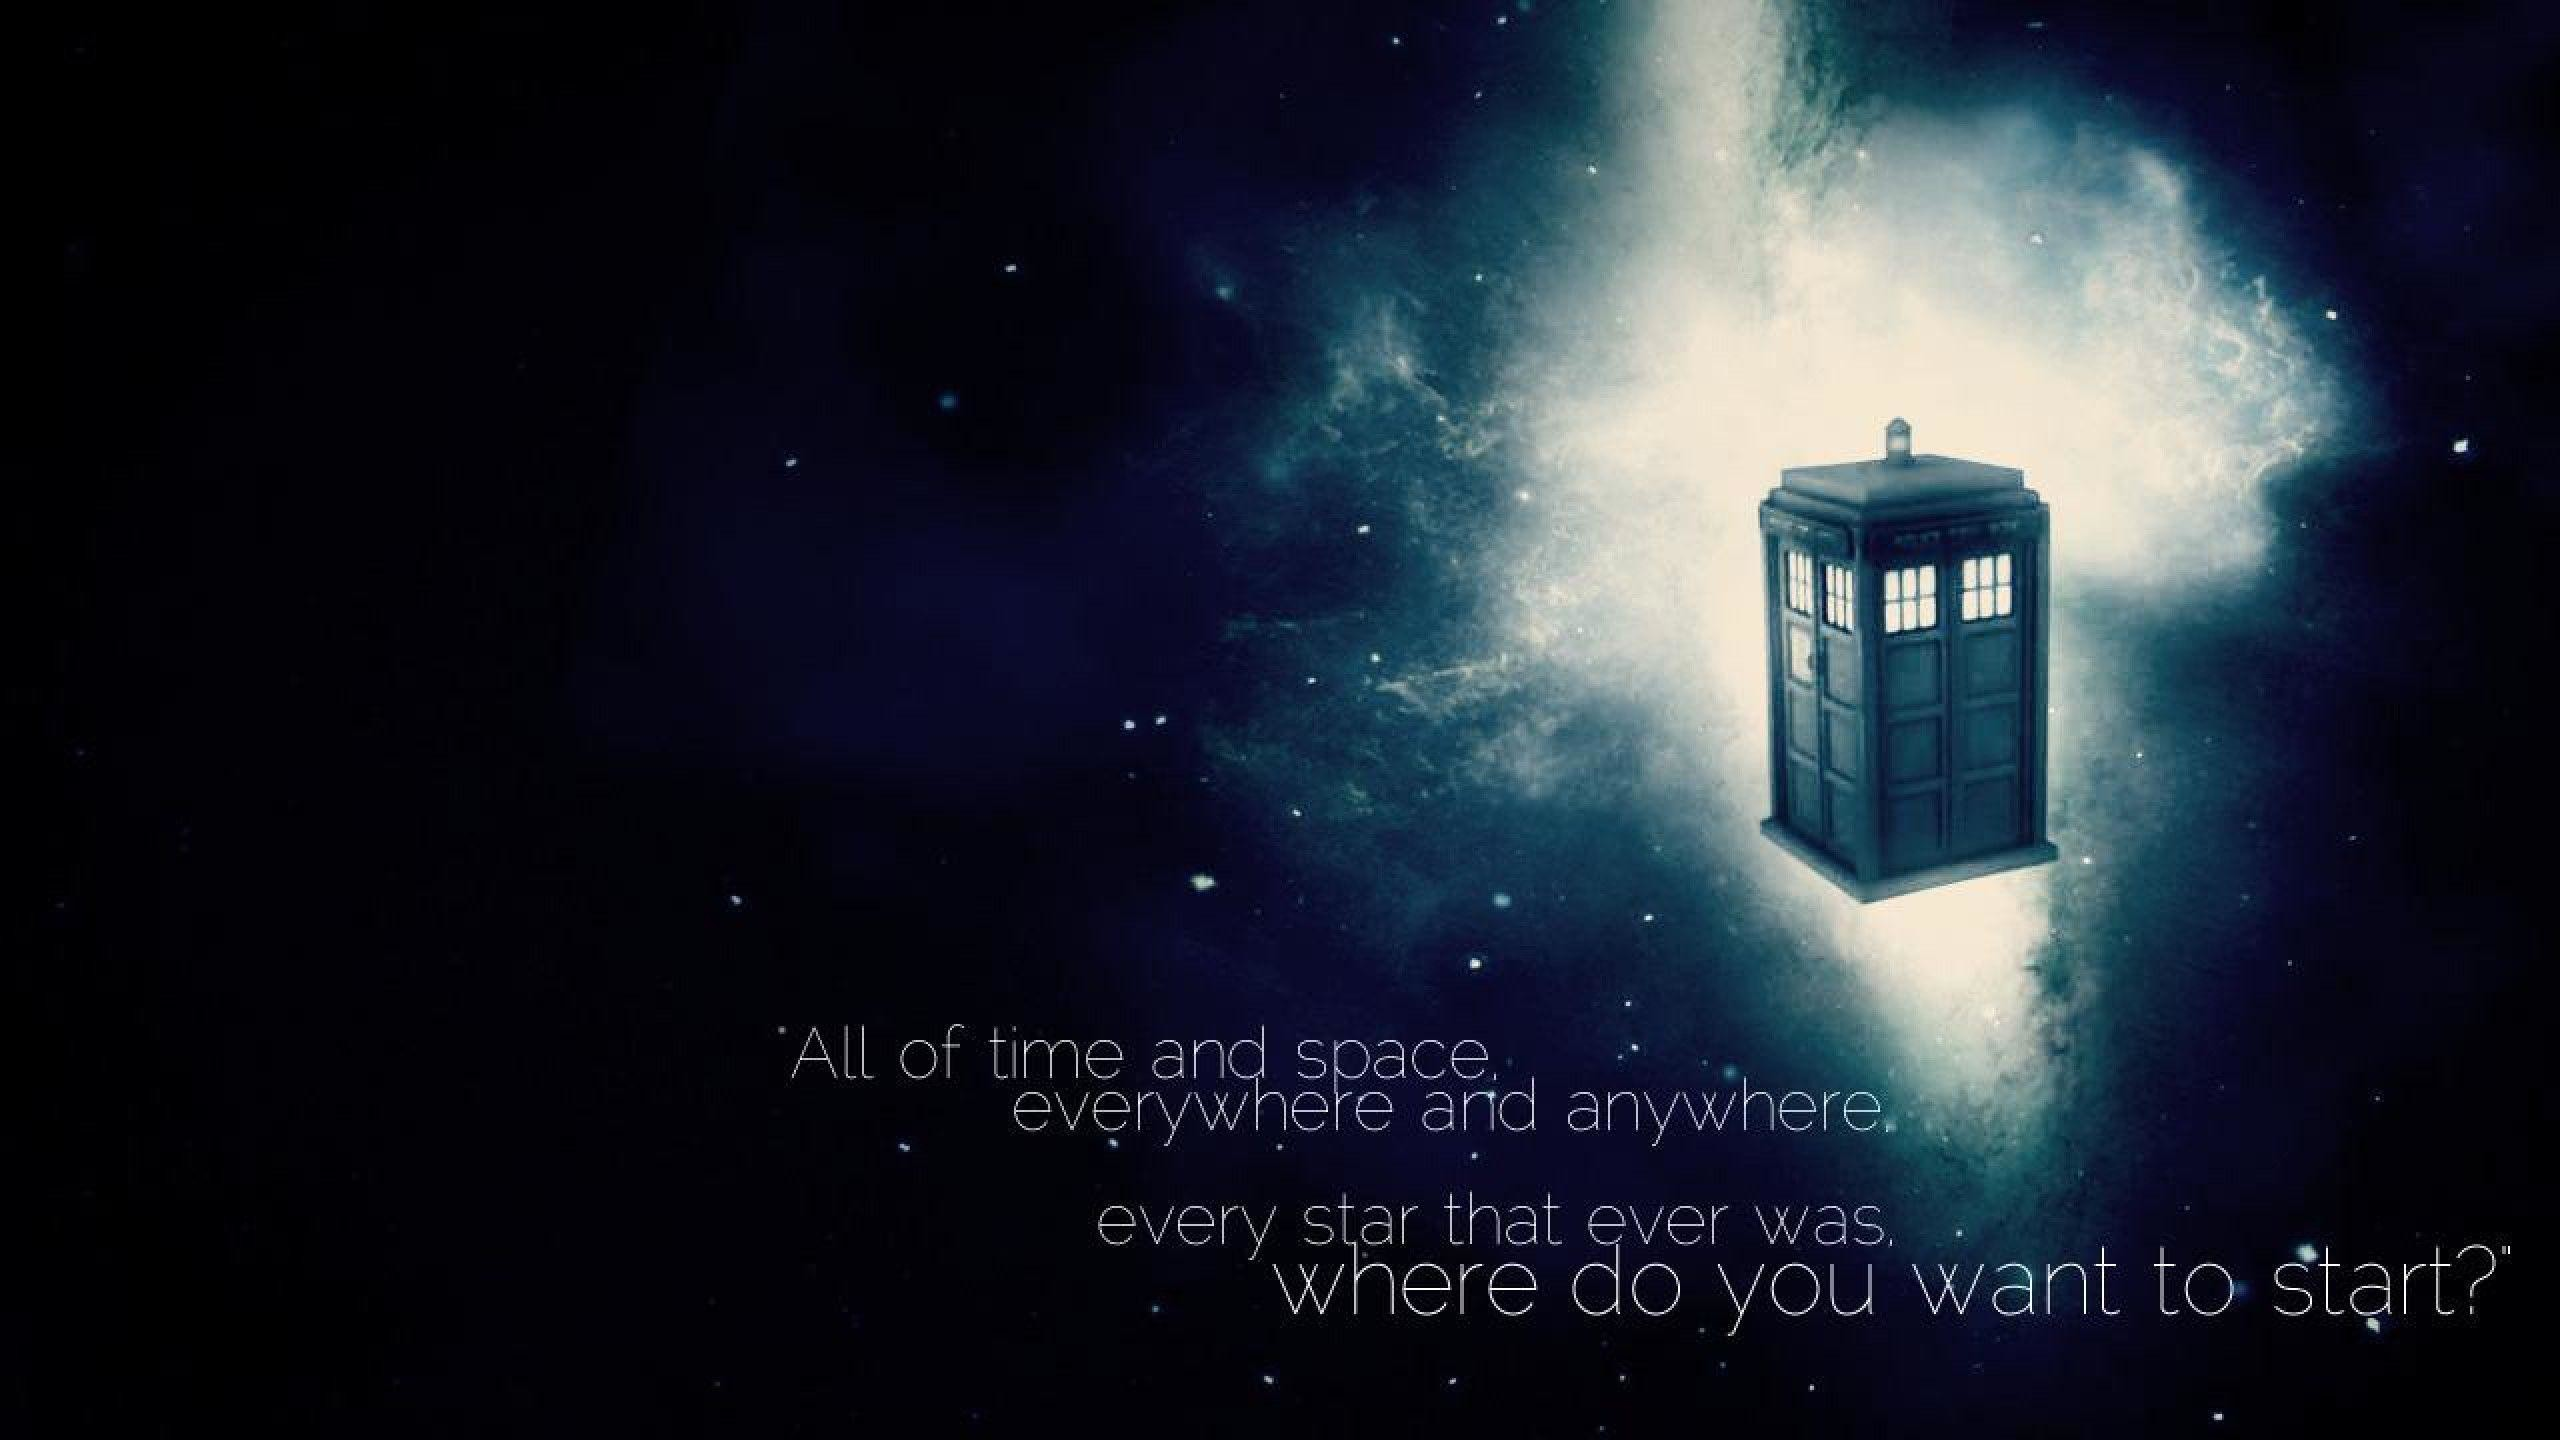 doctor-who-ipad-movie-picture-doctor-who-wallpaper doctor